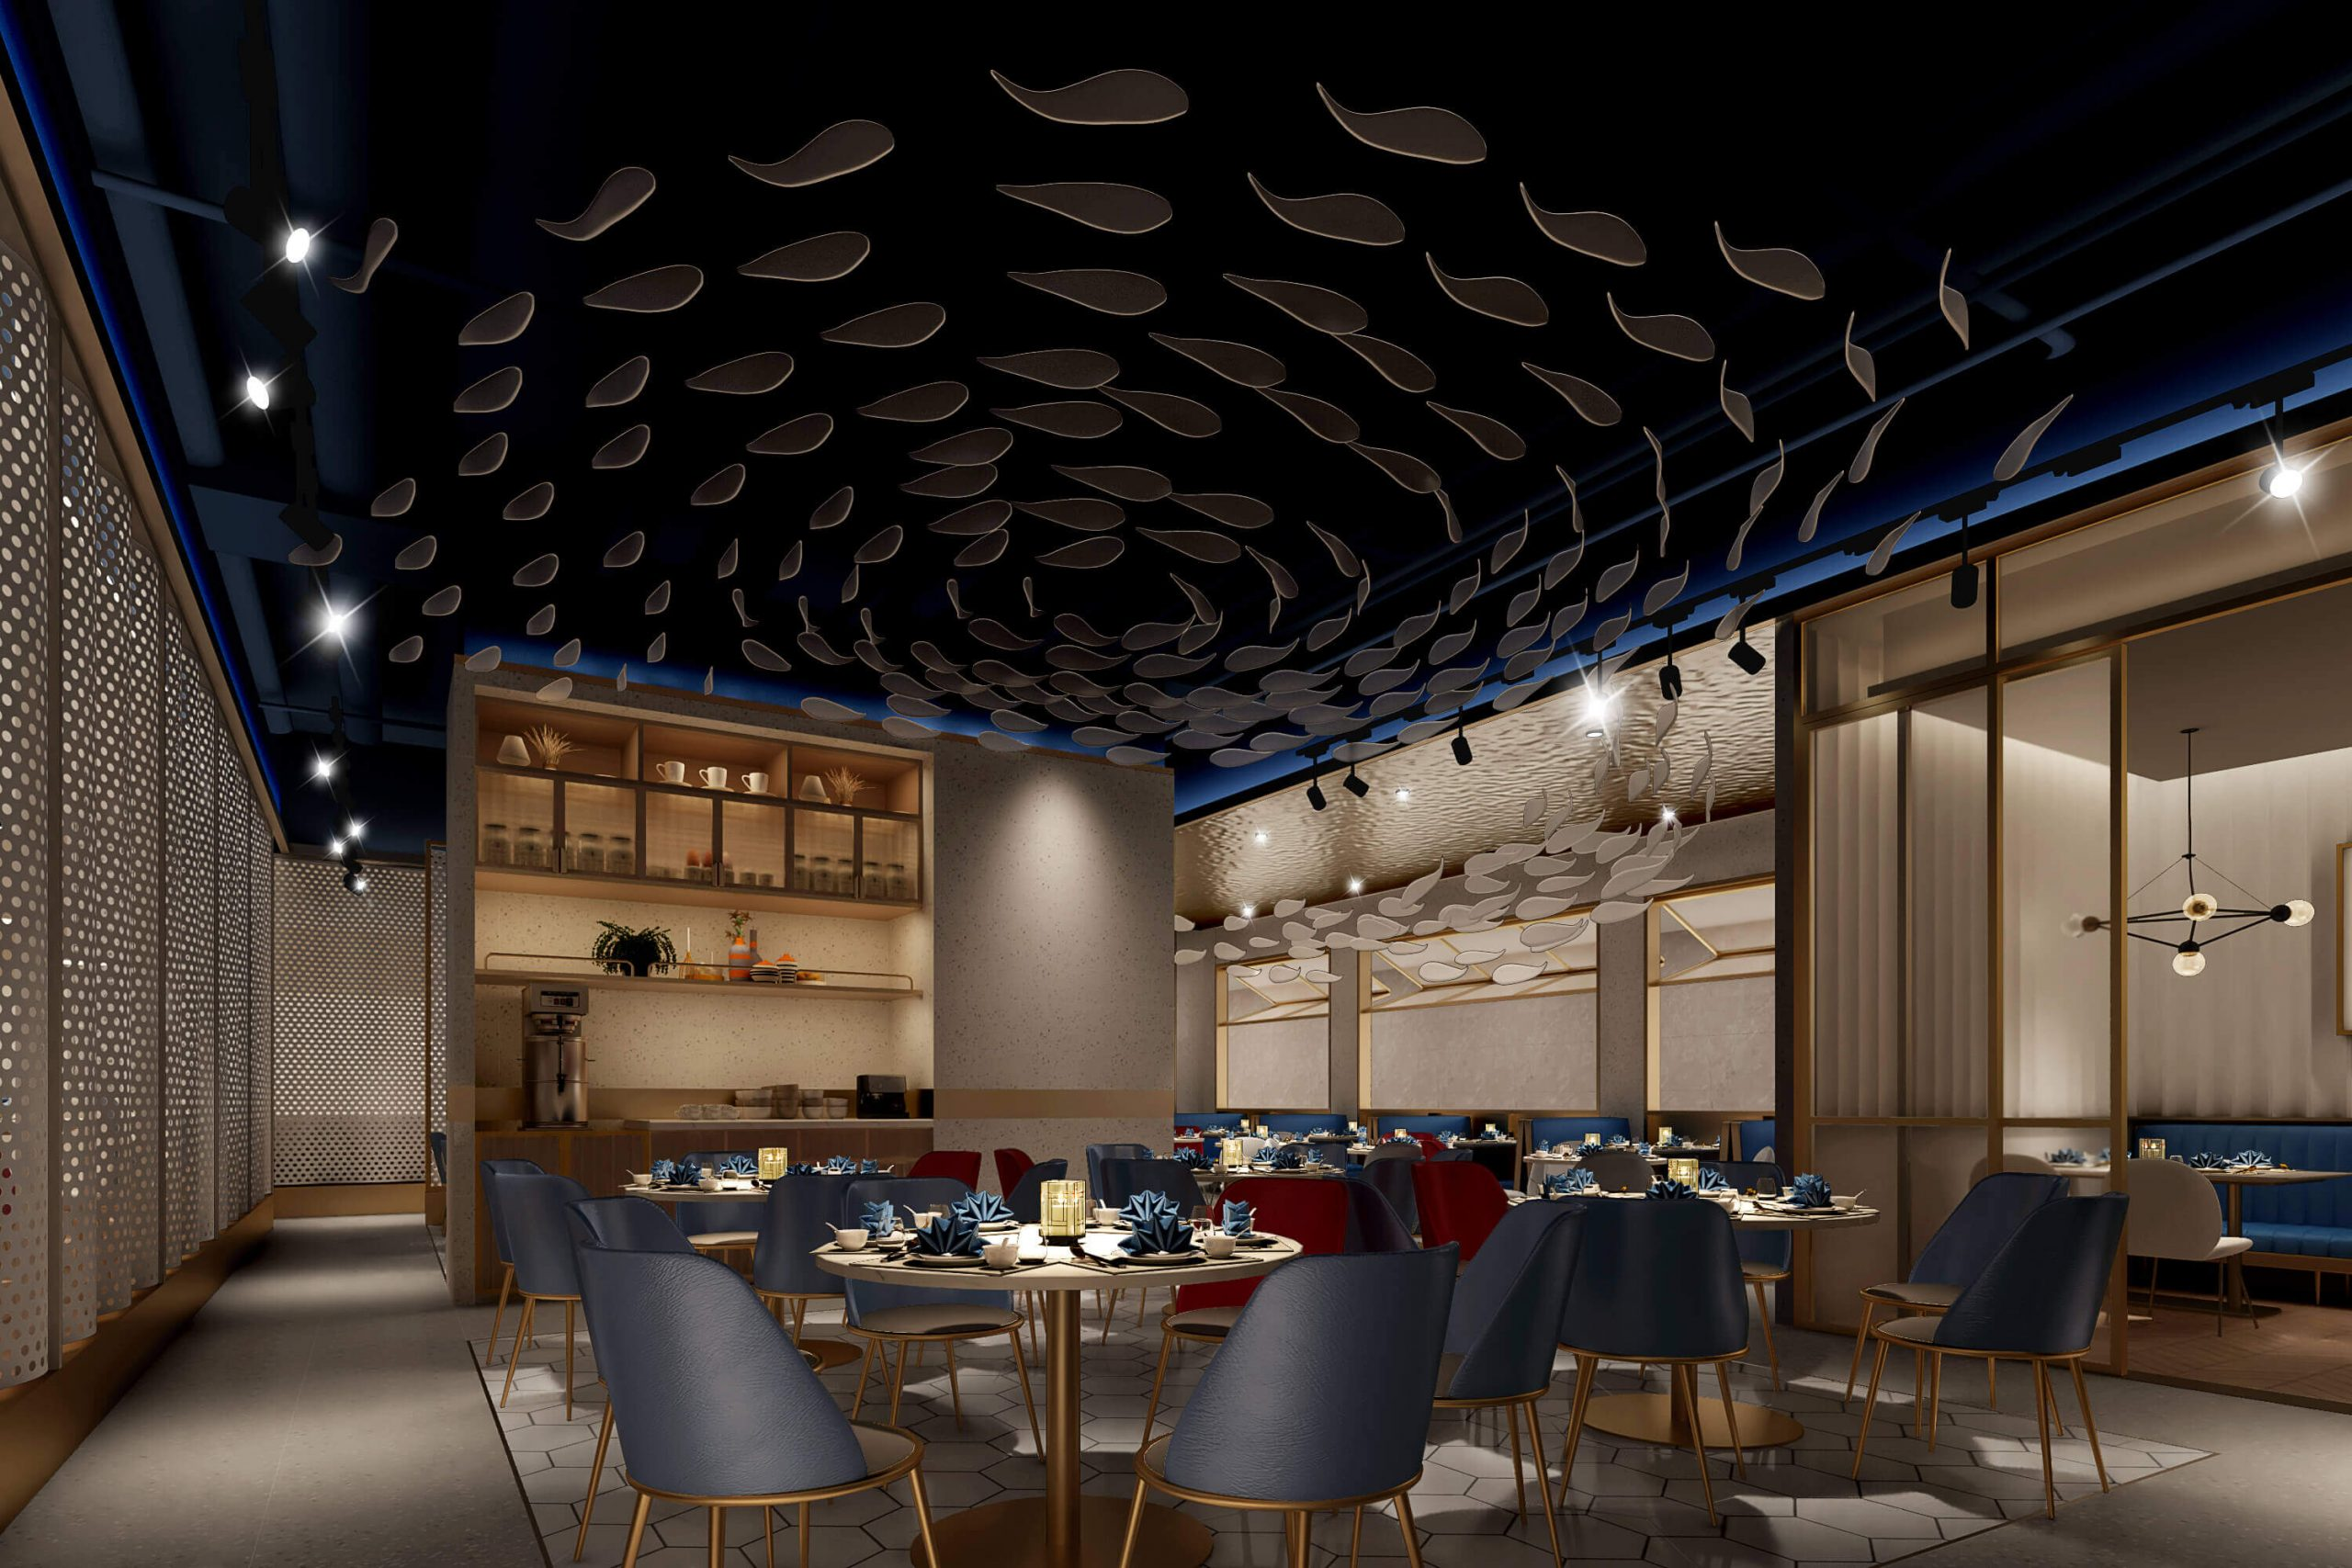 Five things you need to know about theme restaurant design